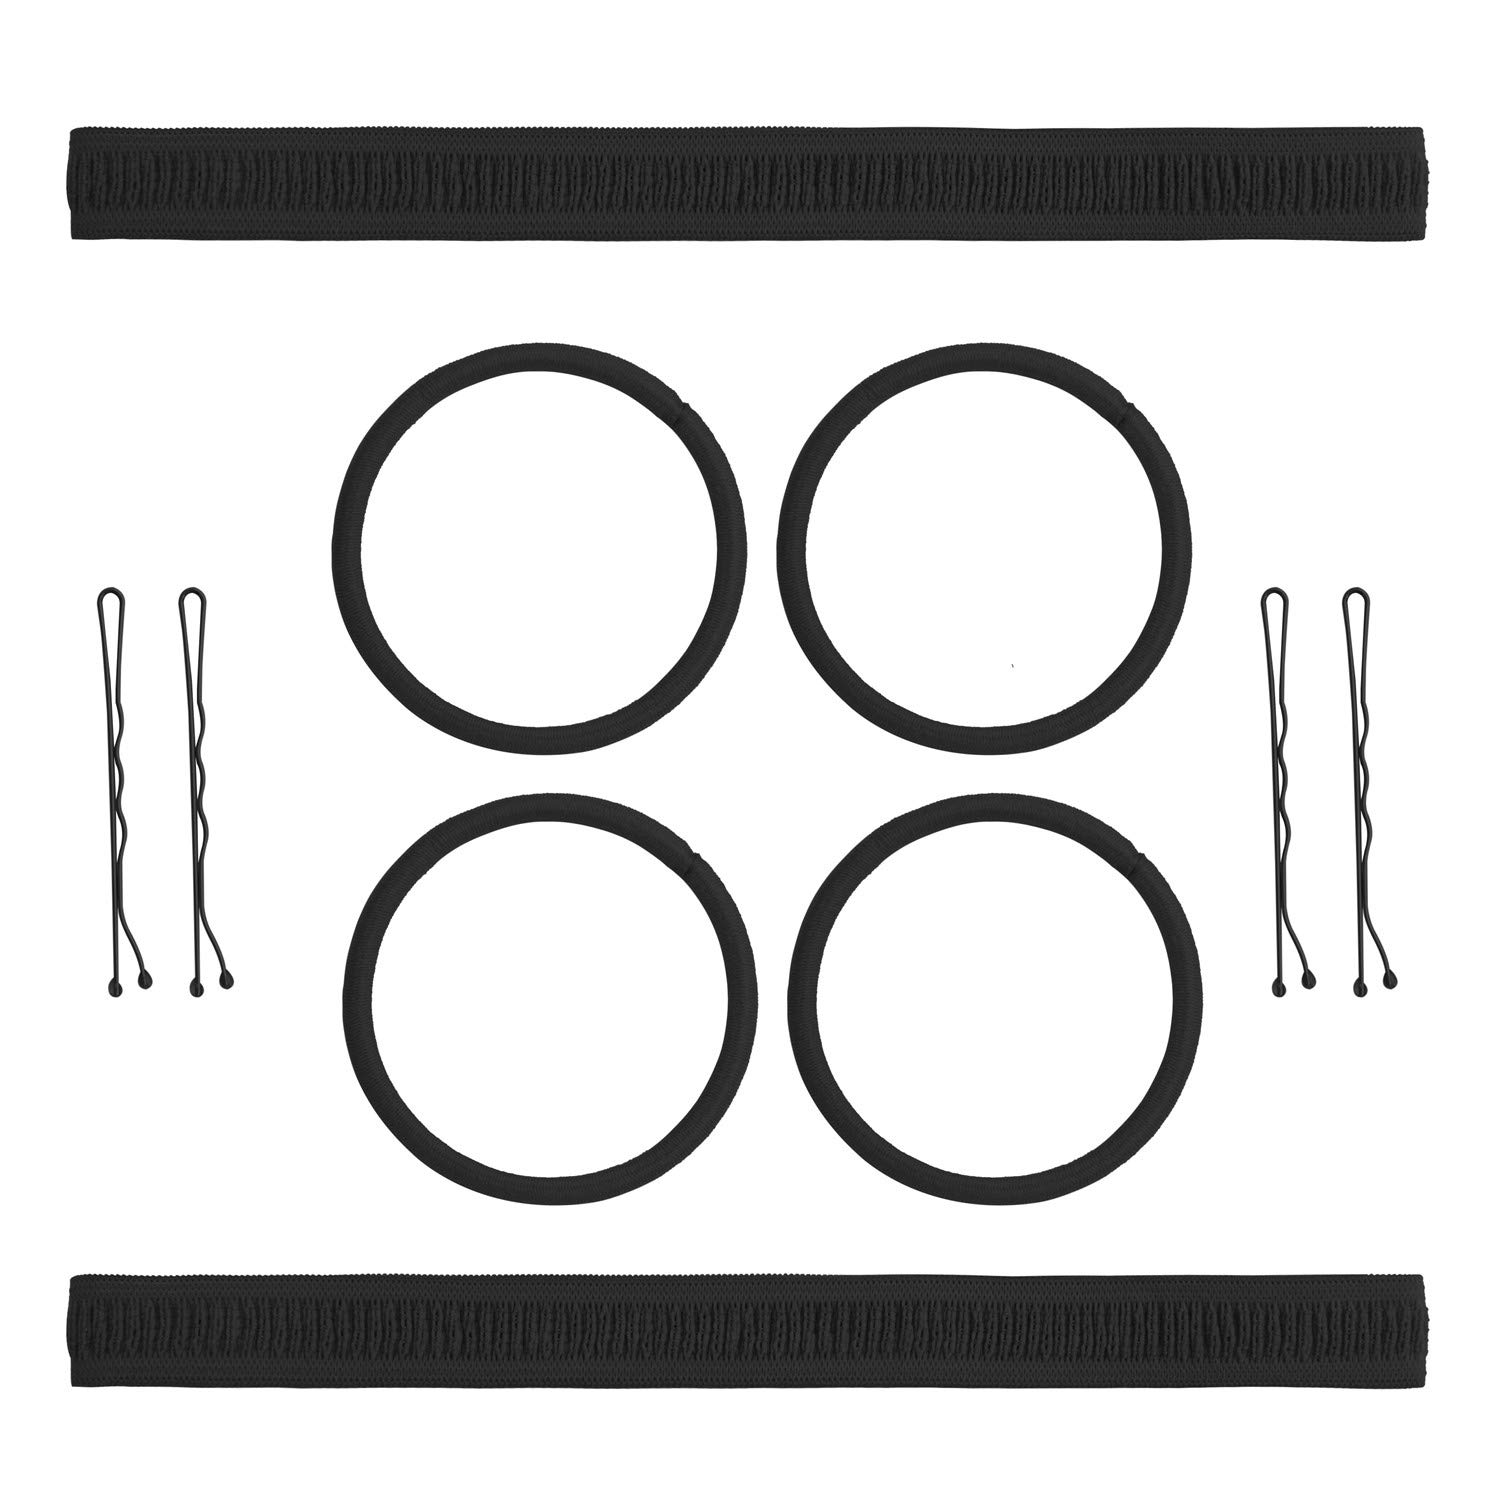 AwEx Hair Accessory Kit, Brown, Pack of 4 PCS Headbands Coated Silicone Grips, 4 mm Medium Hair Ties 30 PCS, 2 inches Pretty Bobby Pins 60 PCS